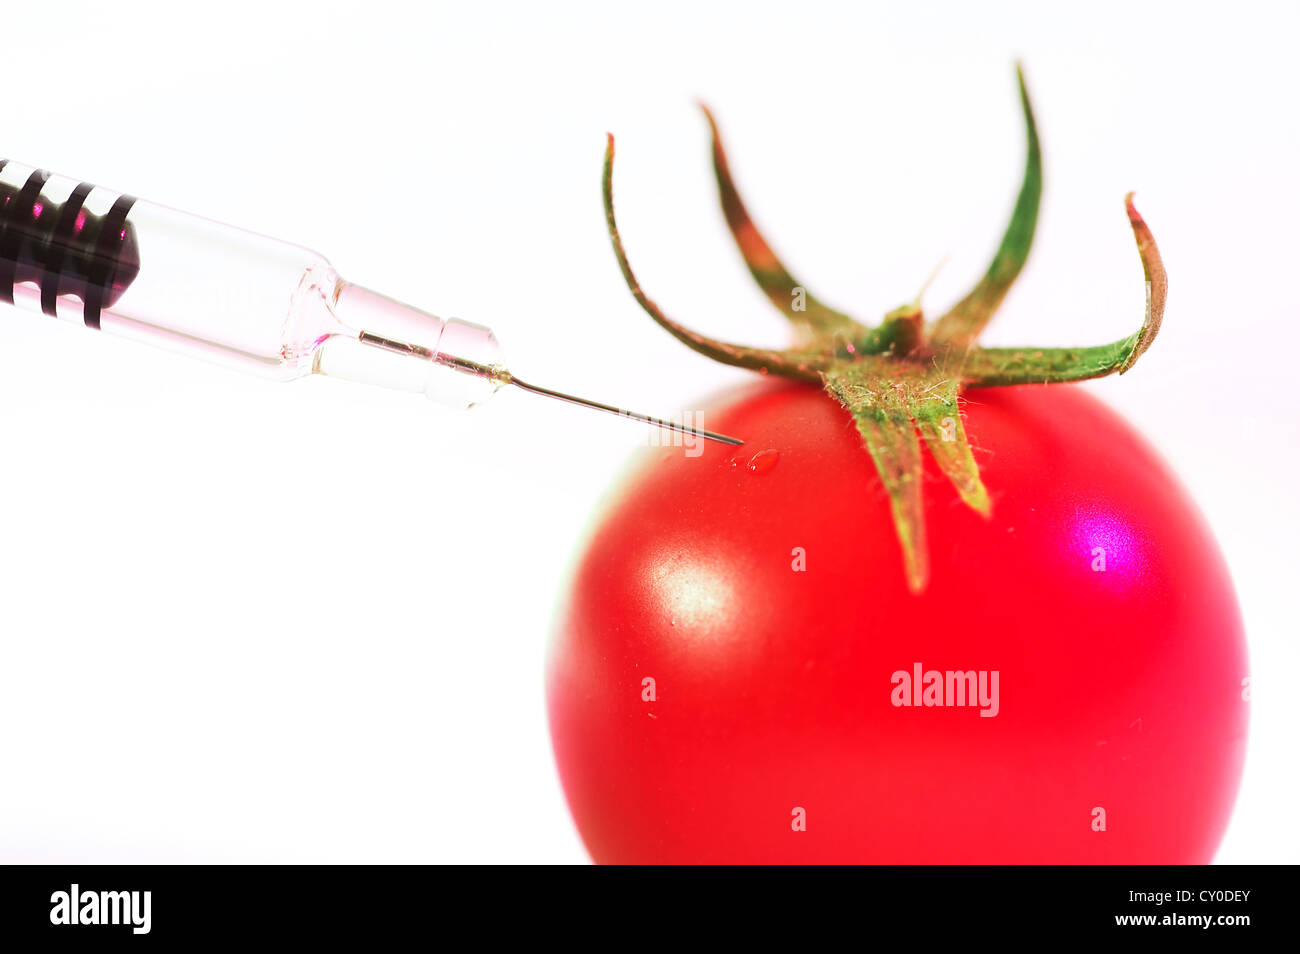 Close up d'une aiguille injectant une tomate GM Photo Stock